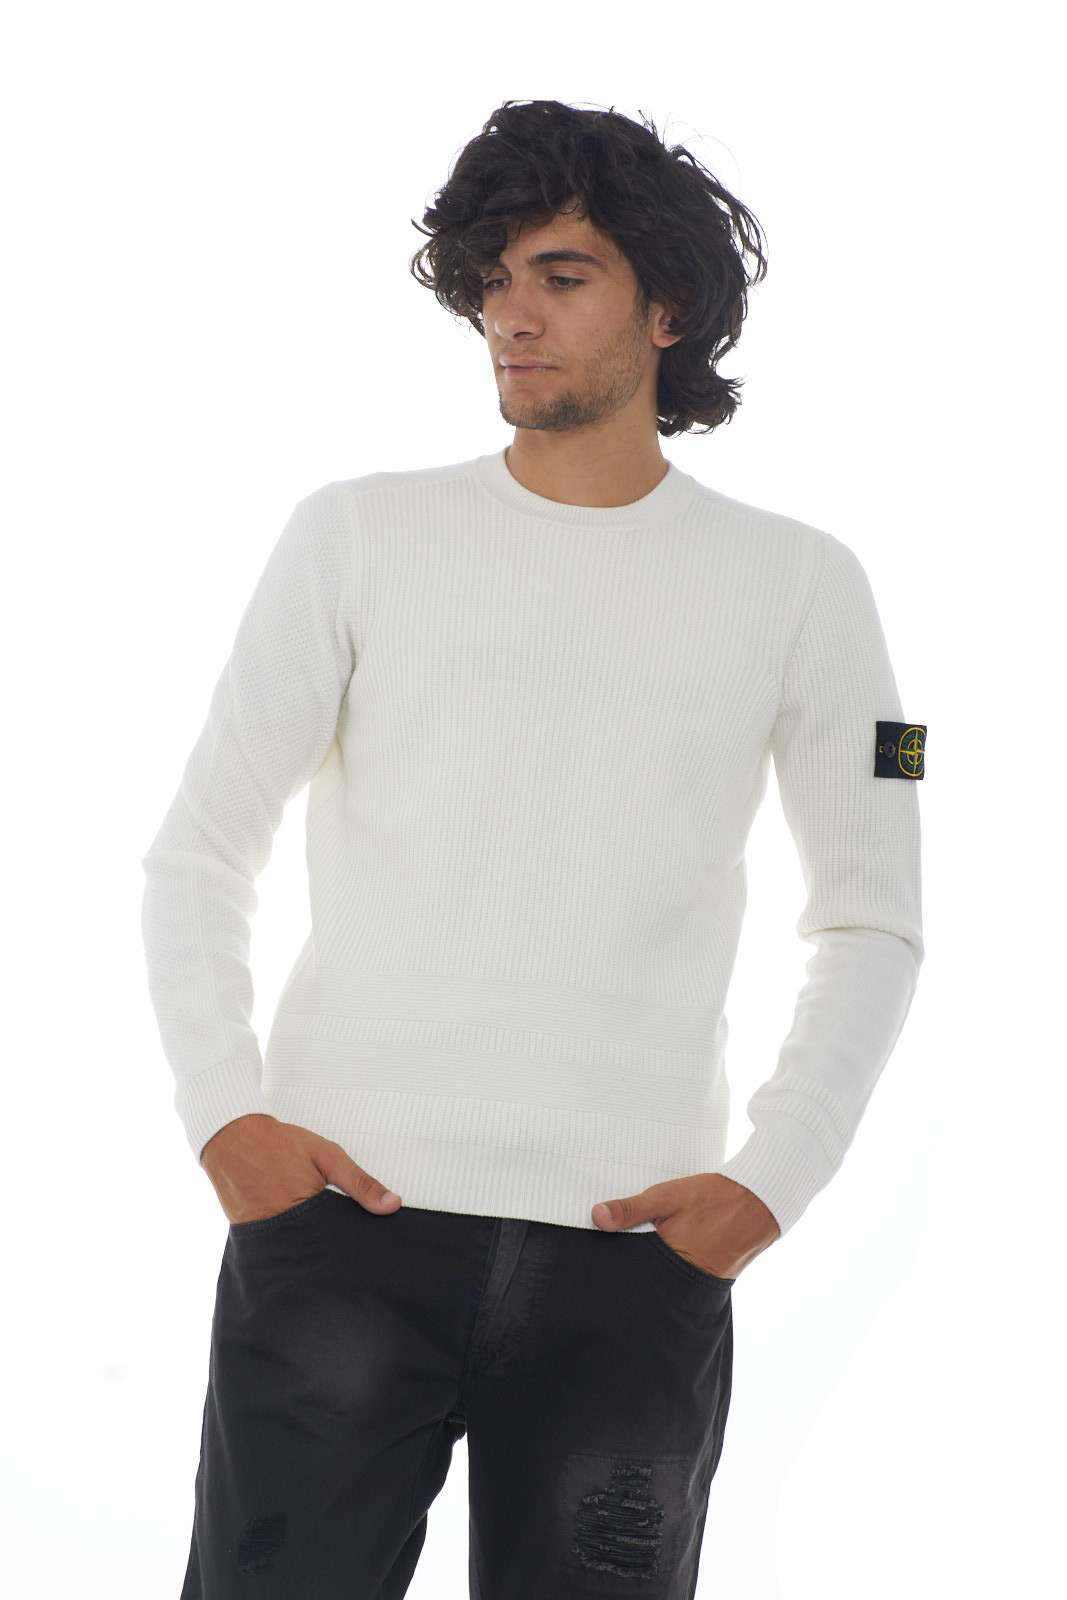 https://www.parmax.com/media/catalog/product/a/i/AI-outlet_parmax-maglia-uomo-Stone-Island-7115592A1-A_2.jpg